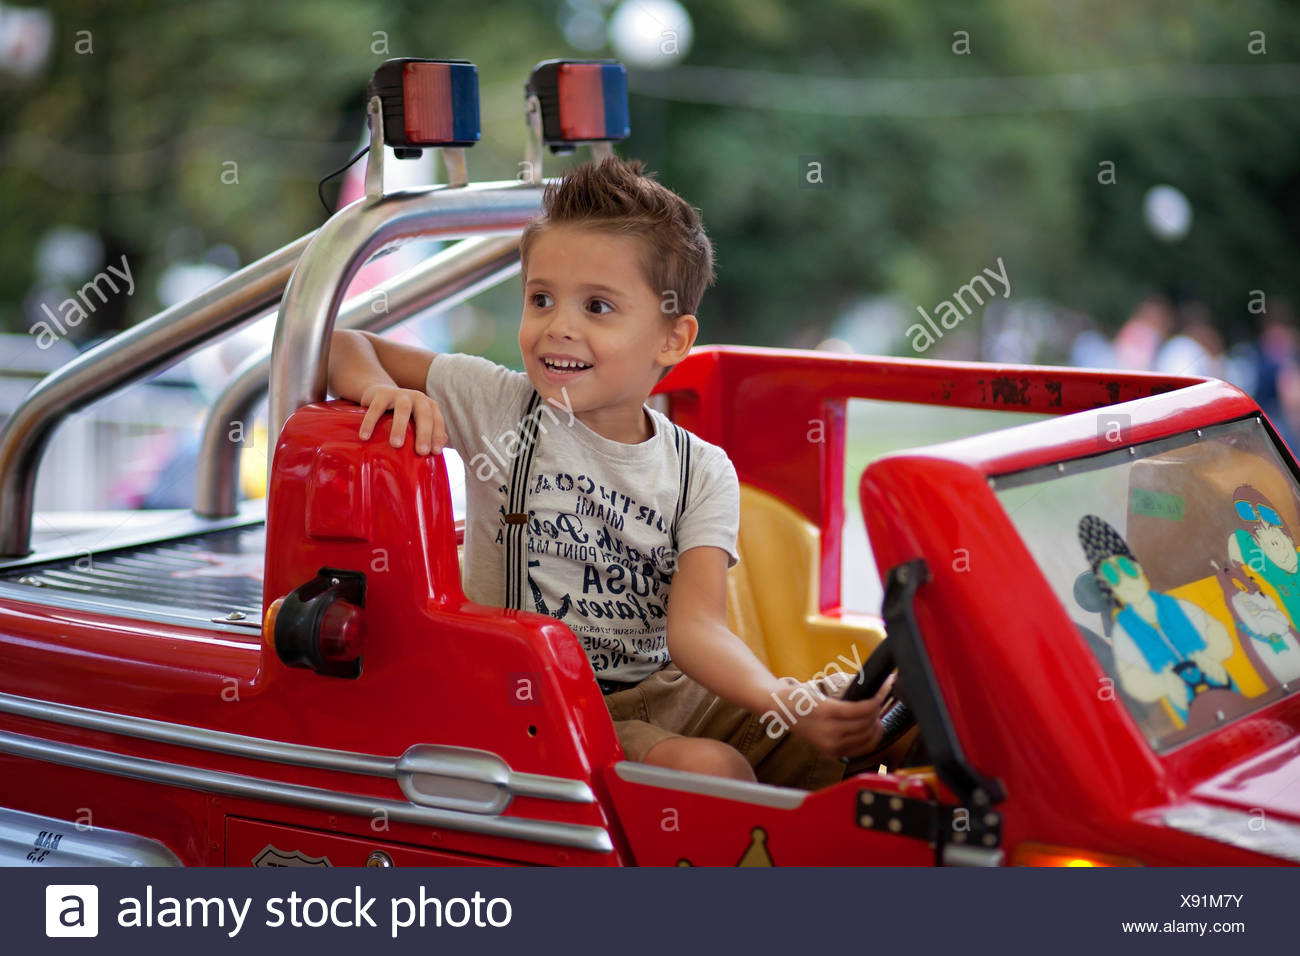 Boy (4-5) en voiture conduire amusement park Photo Stock